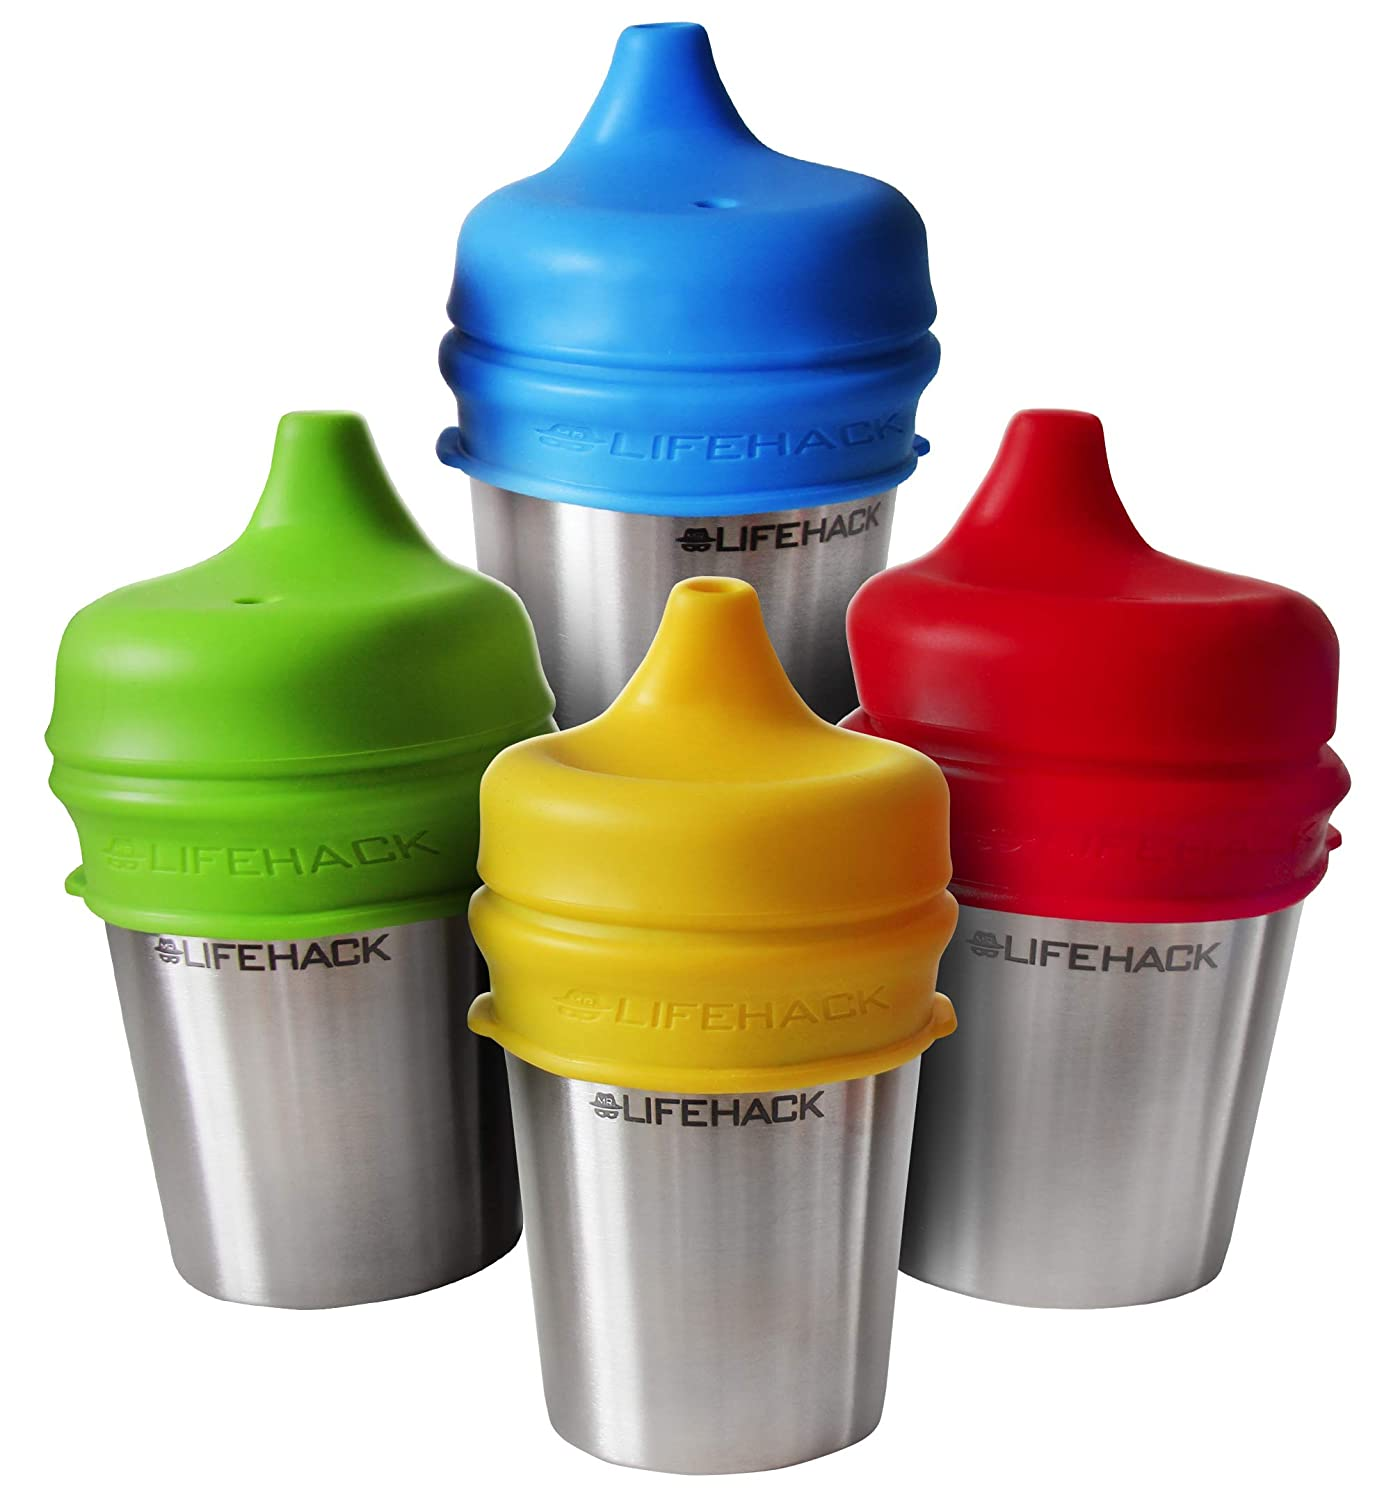 4 Pack 100/% BPA Free Leak Proof Silicone - Makes Any Cup Or Bottle Spill Proof Sippy Cup Lids by MrLifeHack - Perfect for Toddlers /& Babies